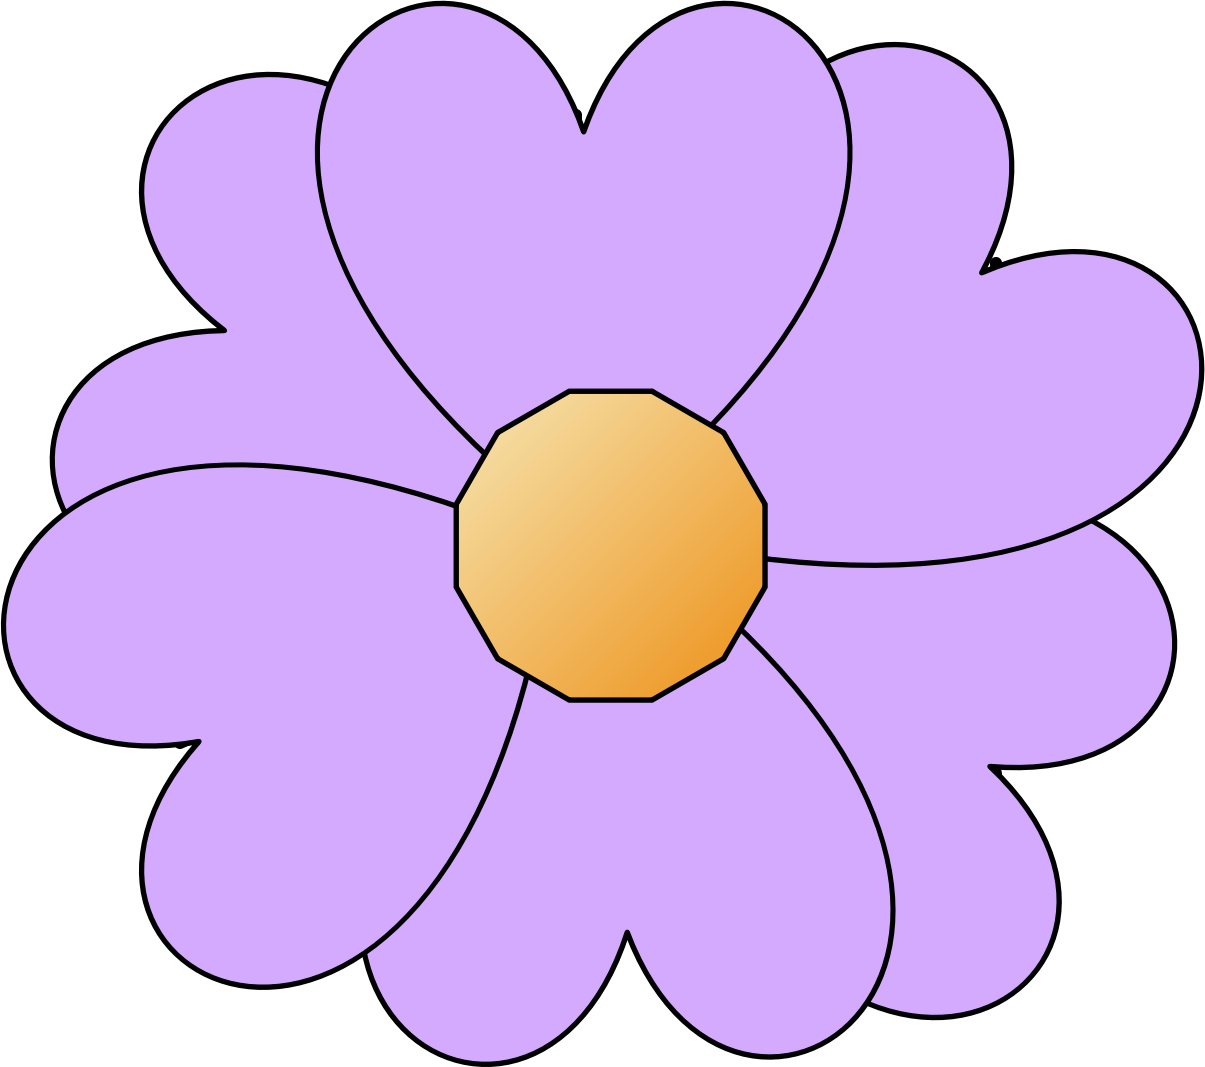 Flower clipart simple. Purple big image png